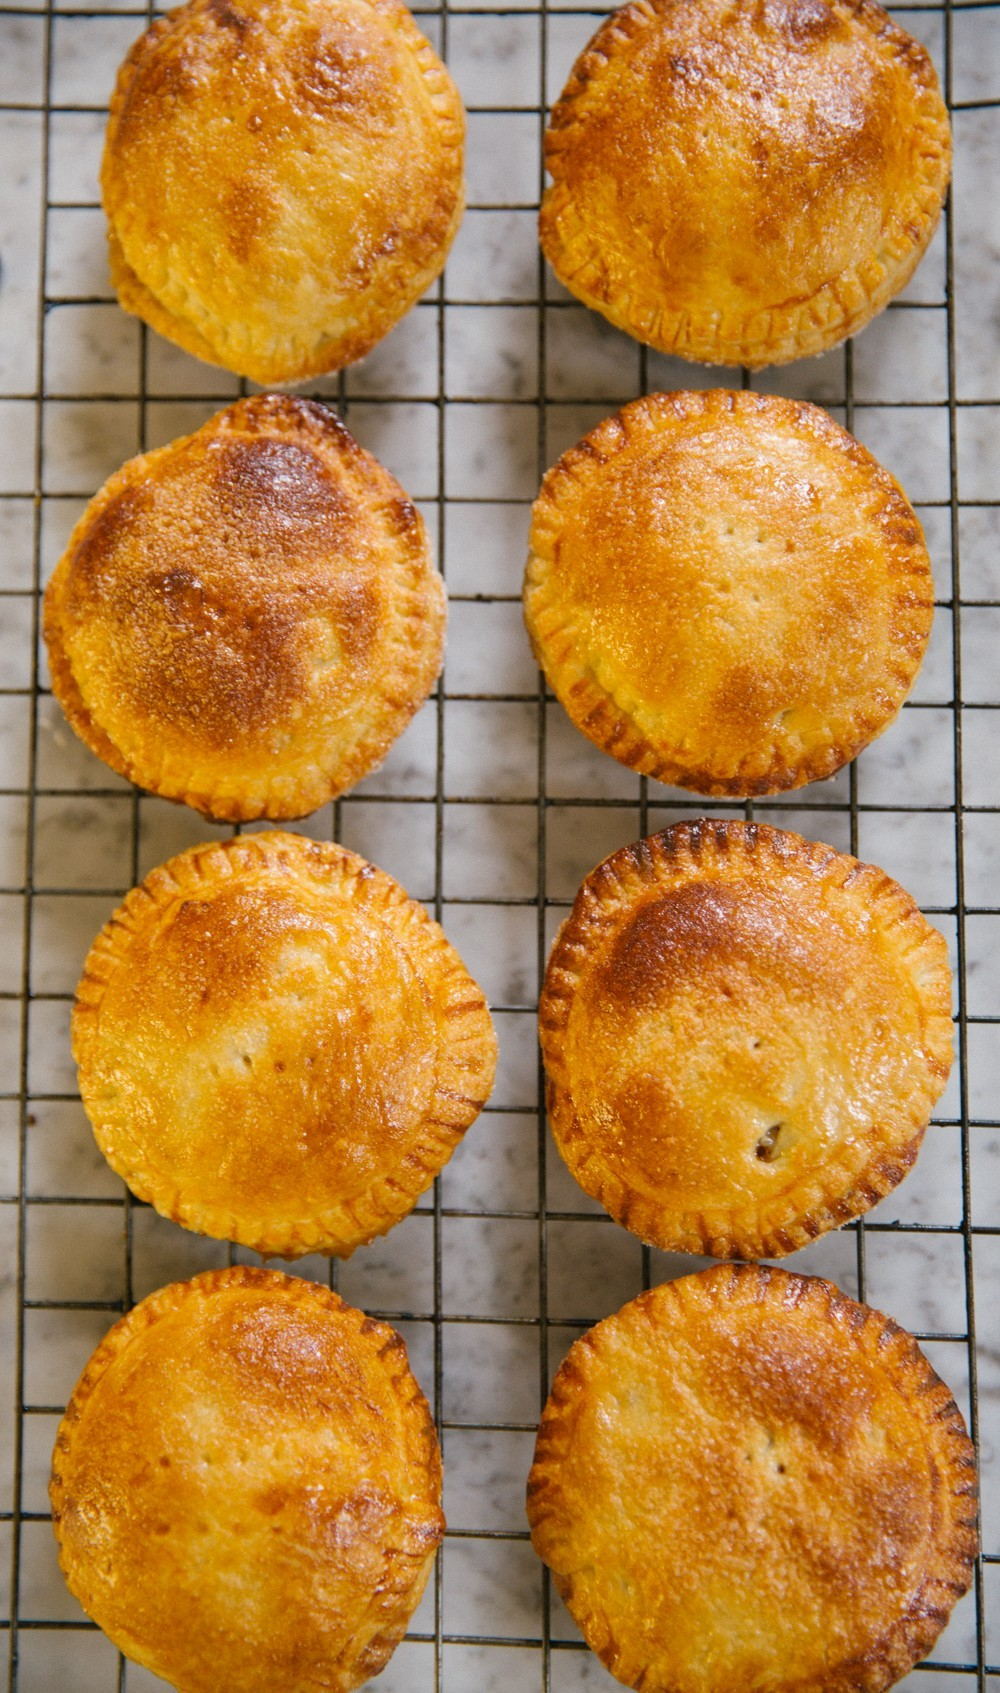 Individual apple pies, fresh from the oven